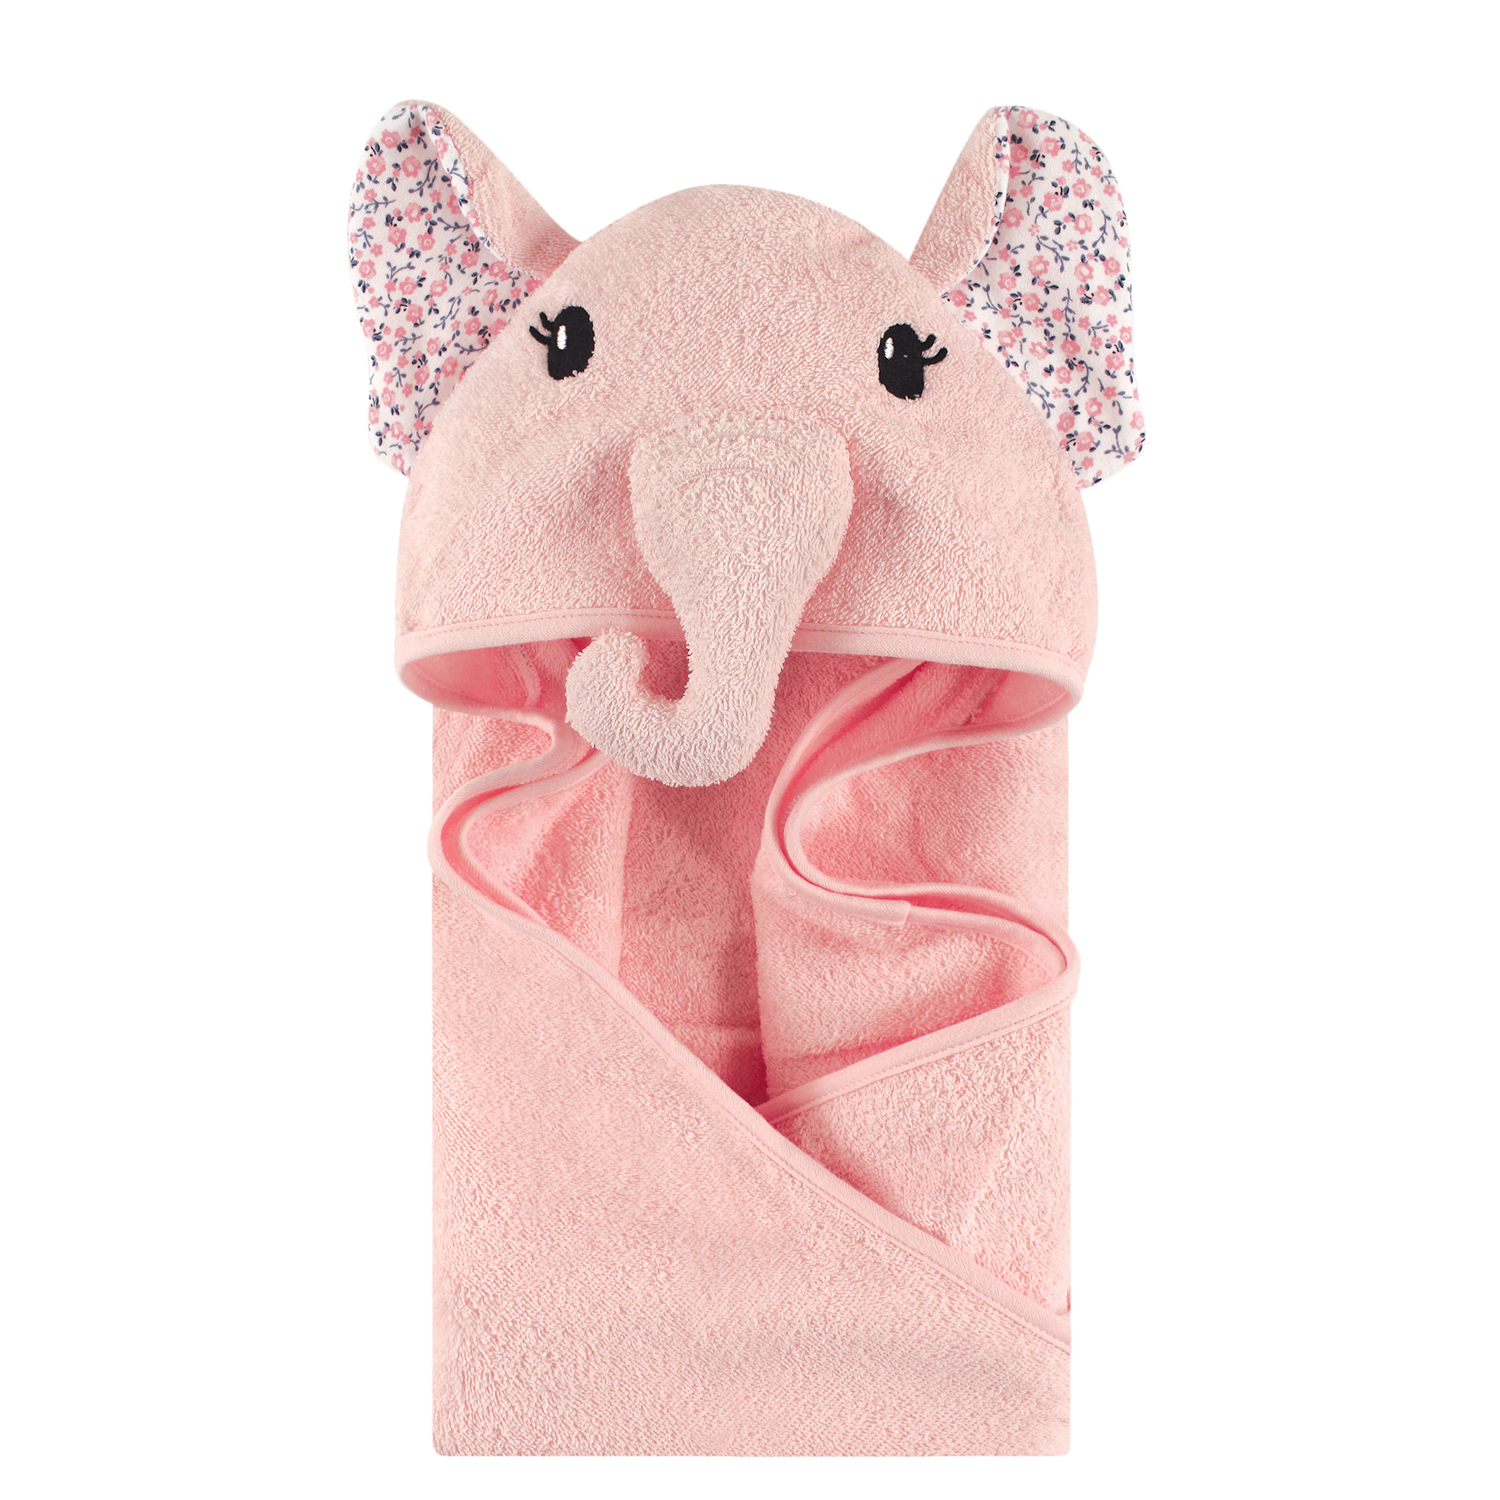 Little Treasure Animal Face Woven Terry Hooded Towel - Floral Elephant